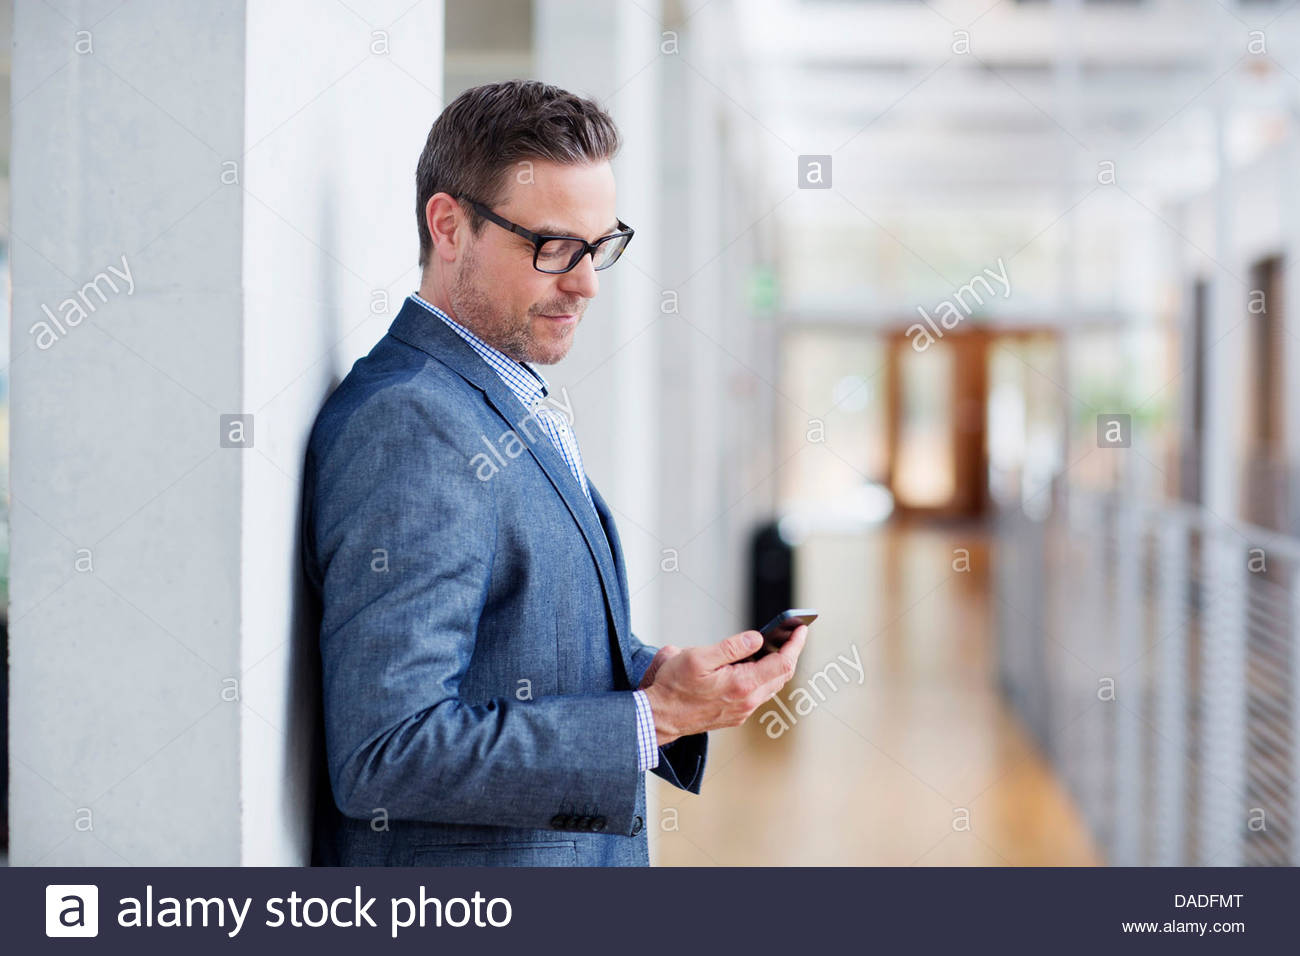 Man looking at mobile phone Photo Stock